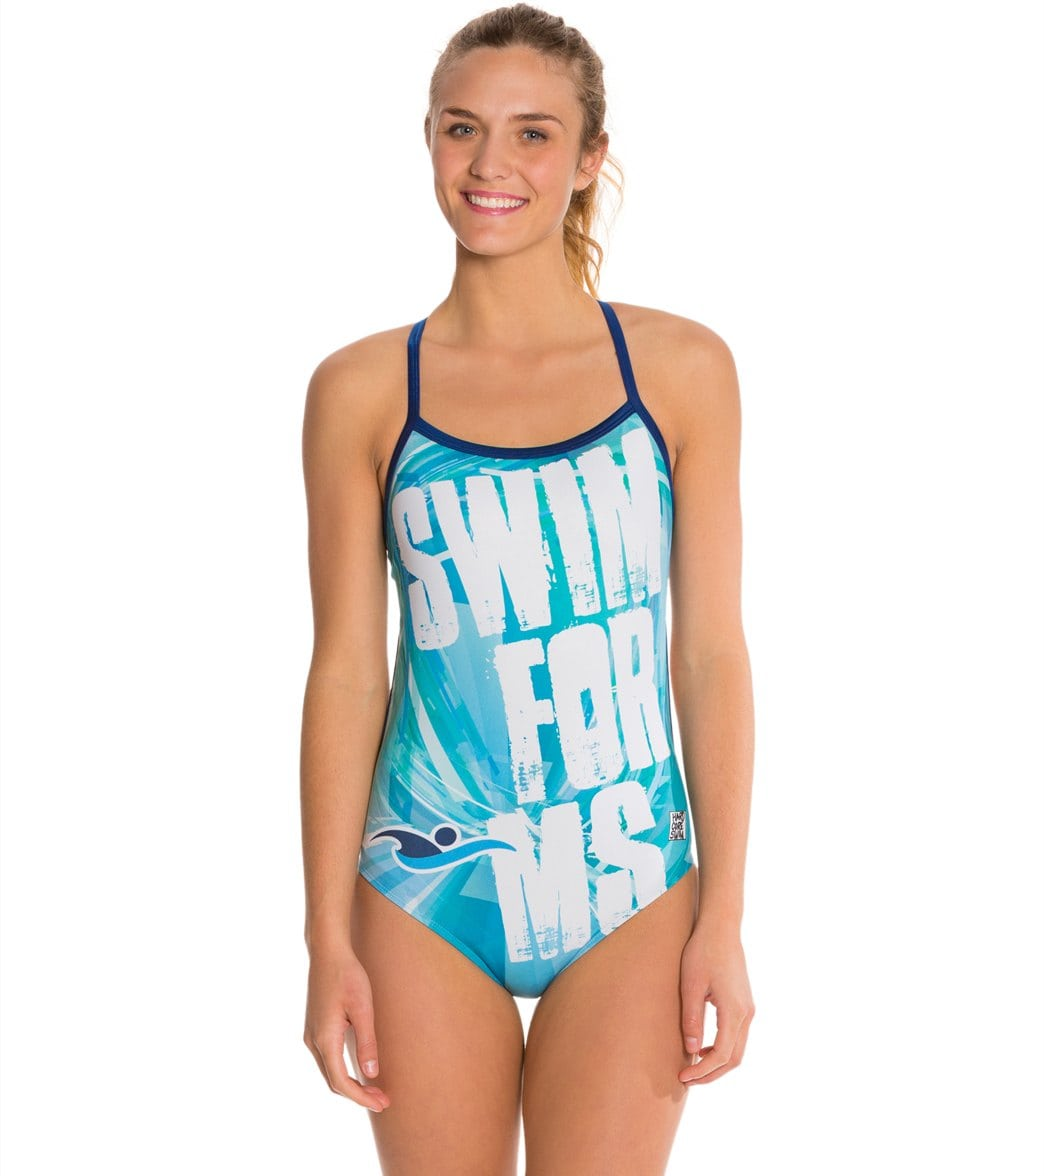 8acc858c1f1 HARDCORESPORT Women's Swim for MS Blue Cali Back Swimsuit at SwimOutlet.com  - Free Shipping